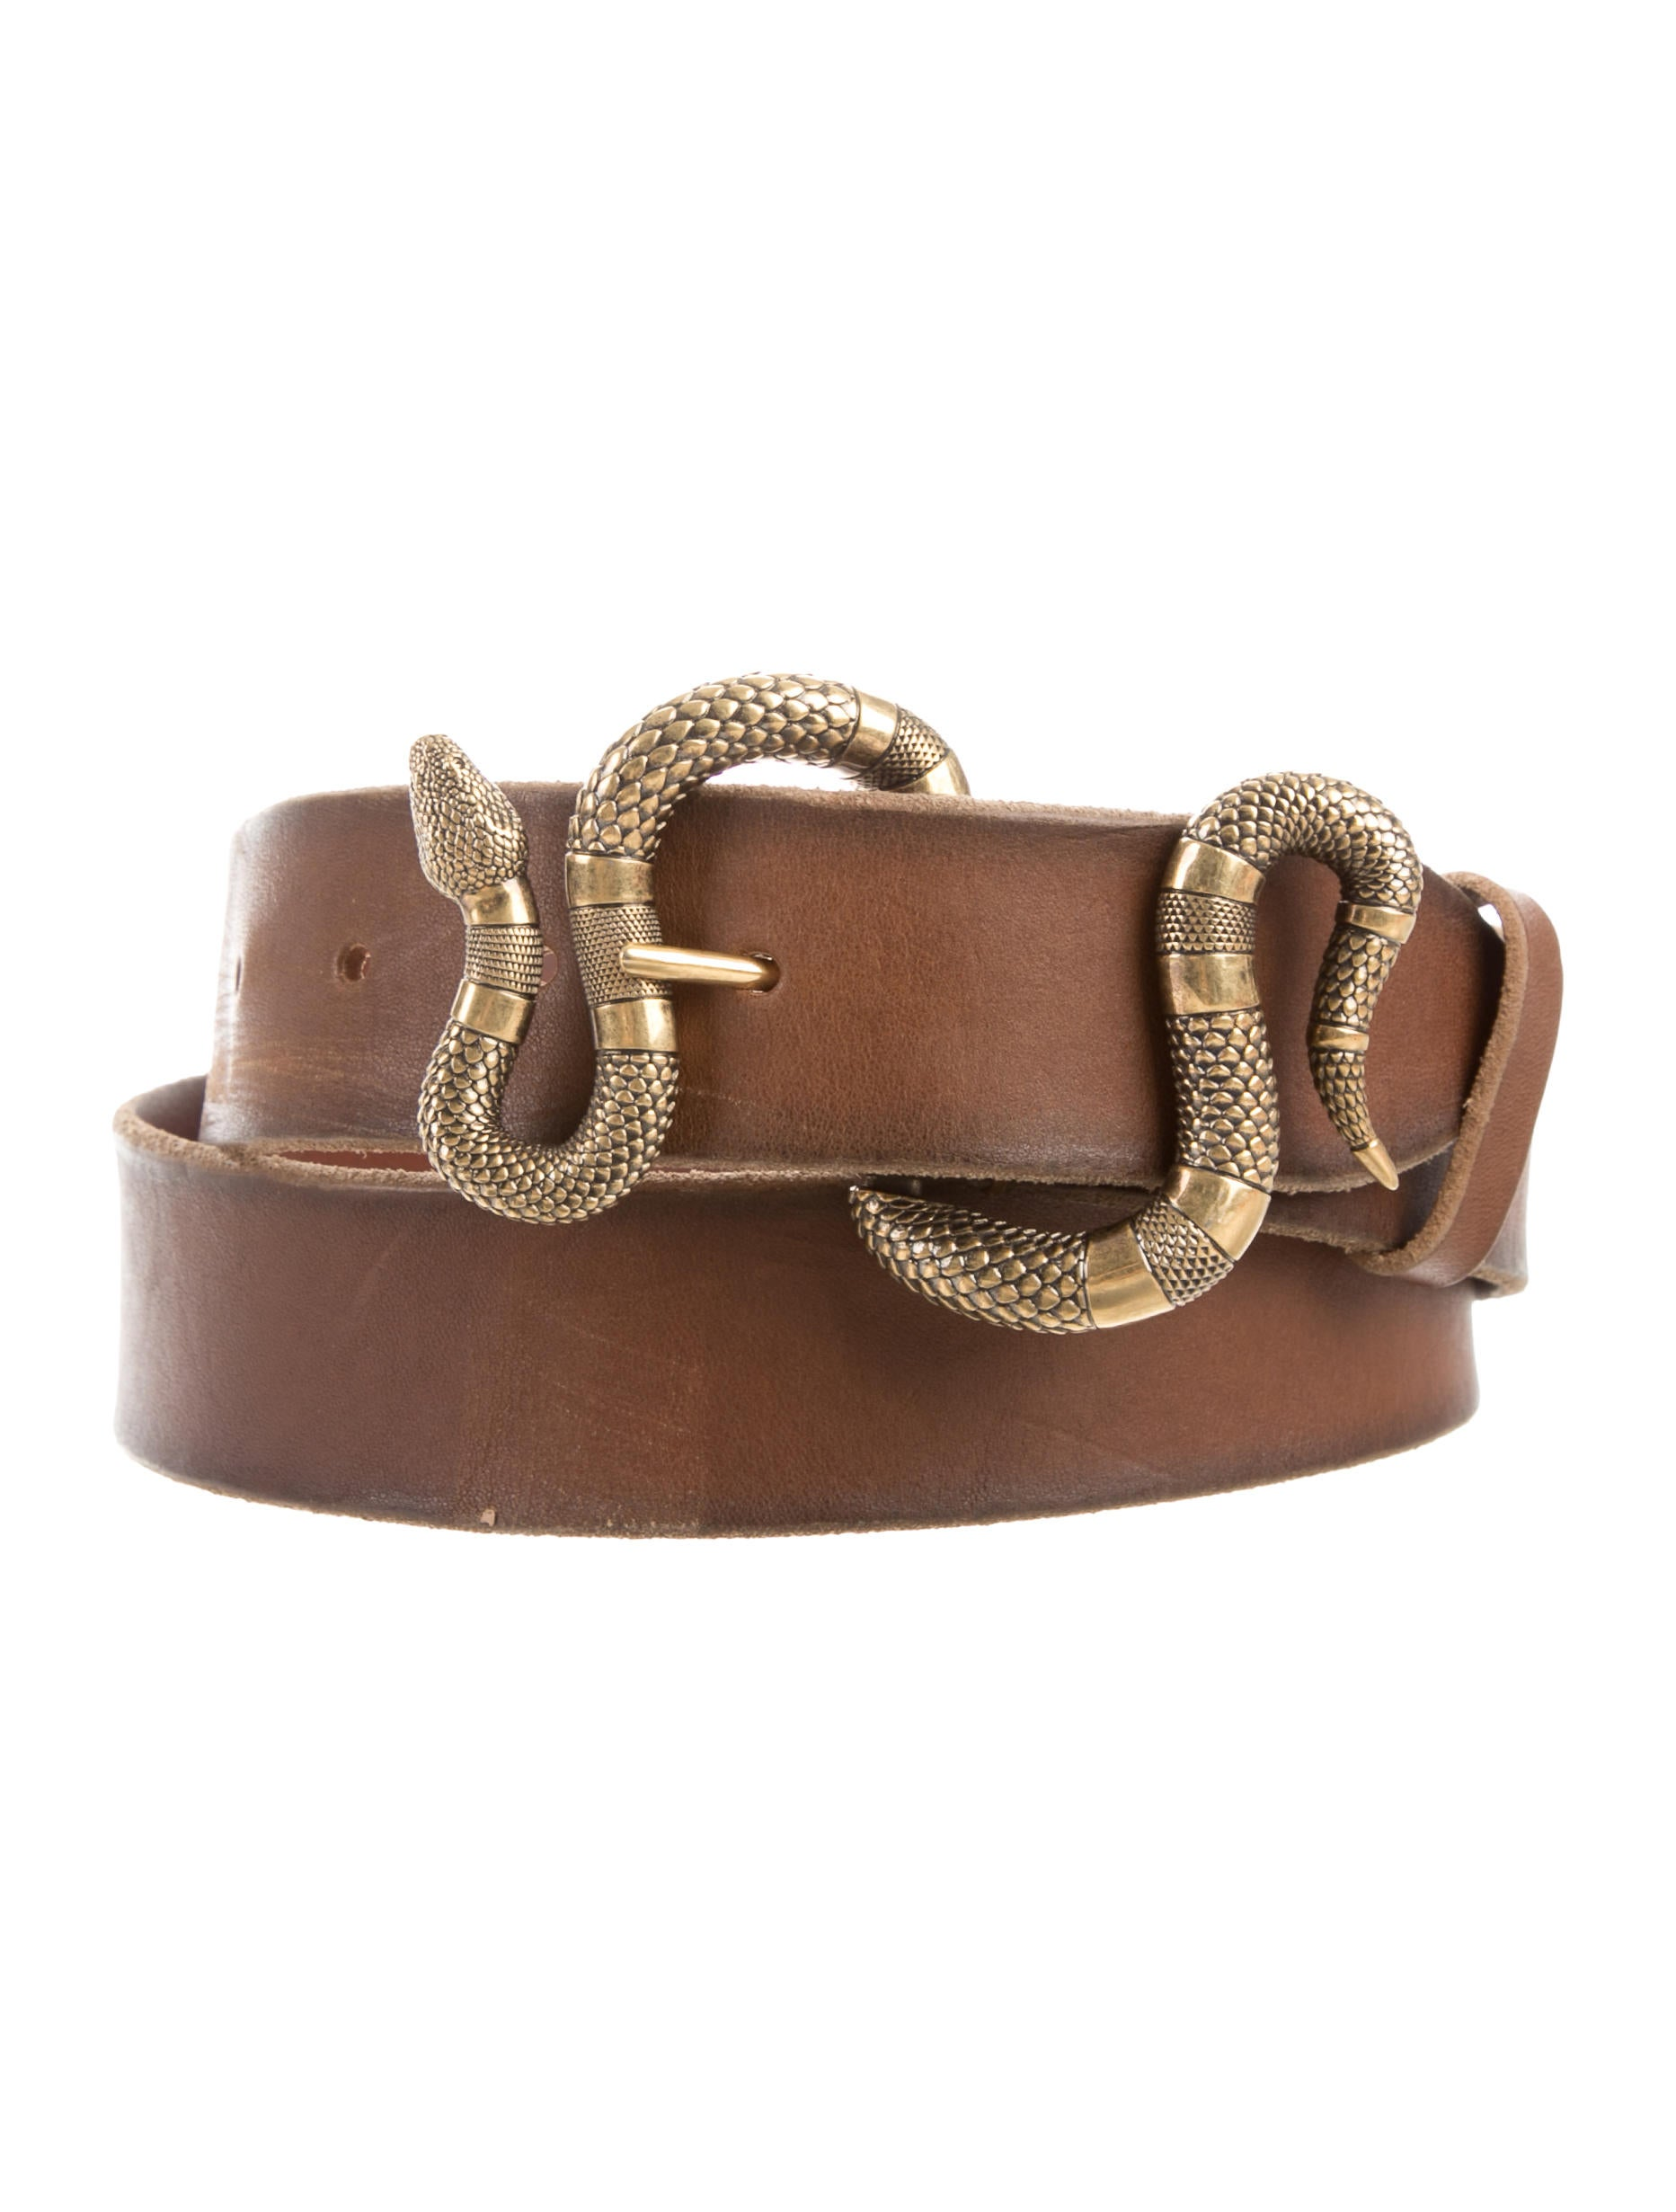 51a5ea4ae Gucci 2017 Snake Buckle Leather Belt - Accessories - GUC198401   The ...